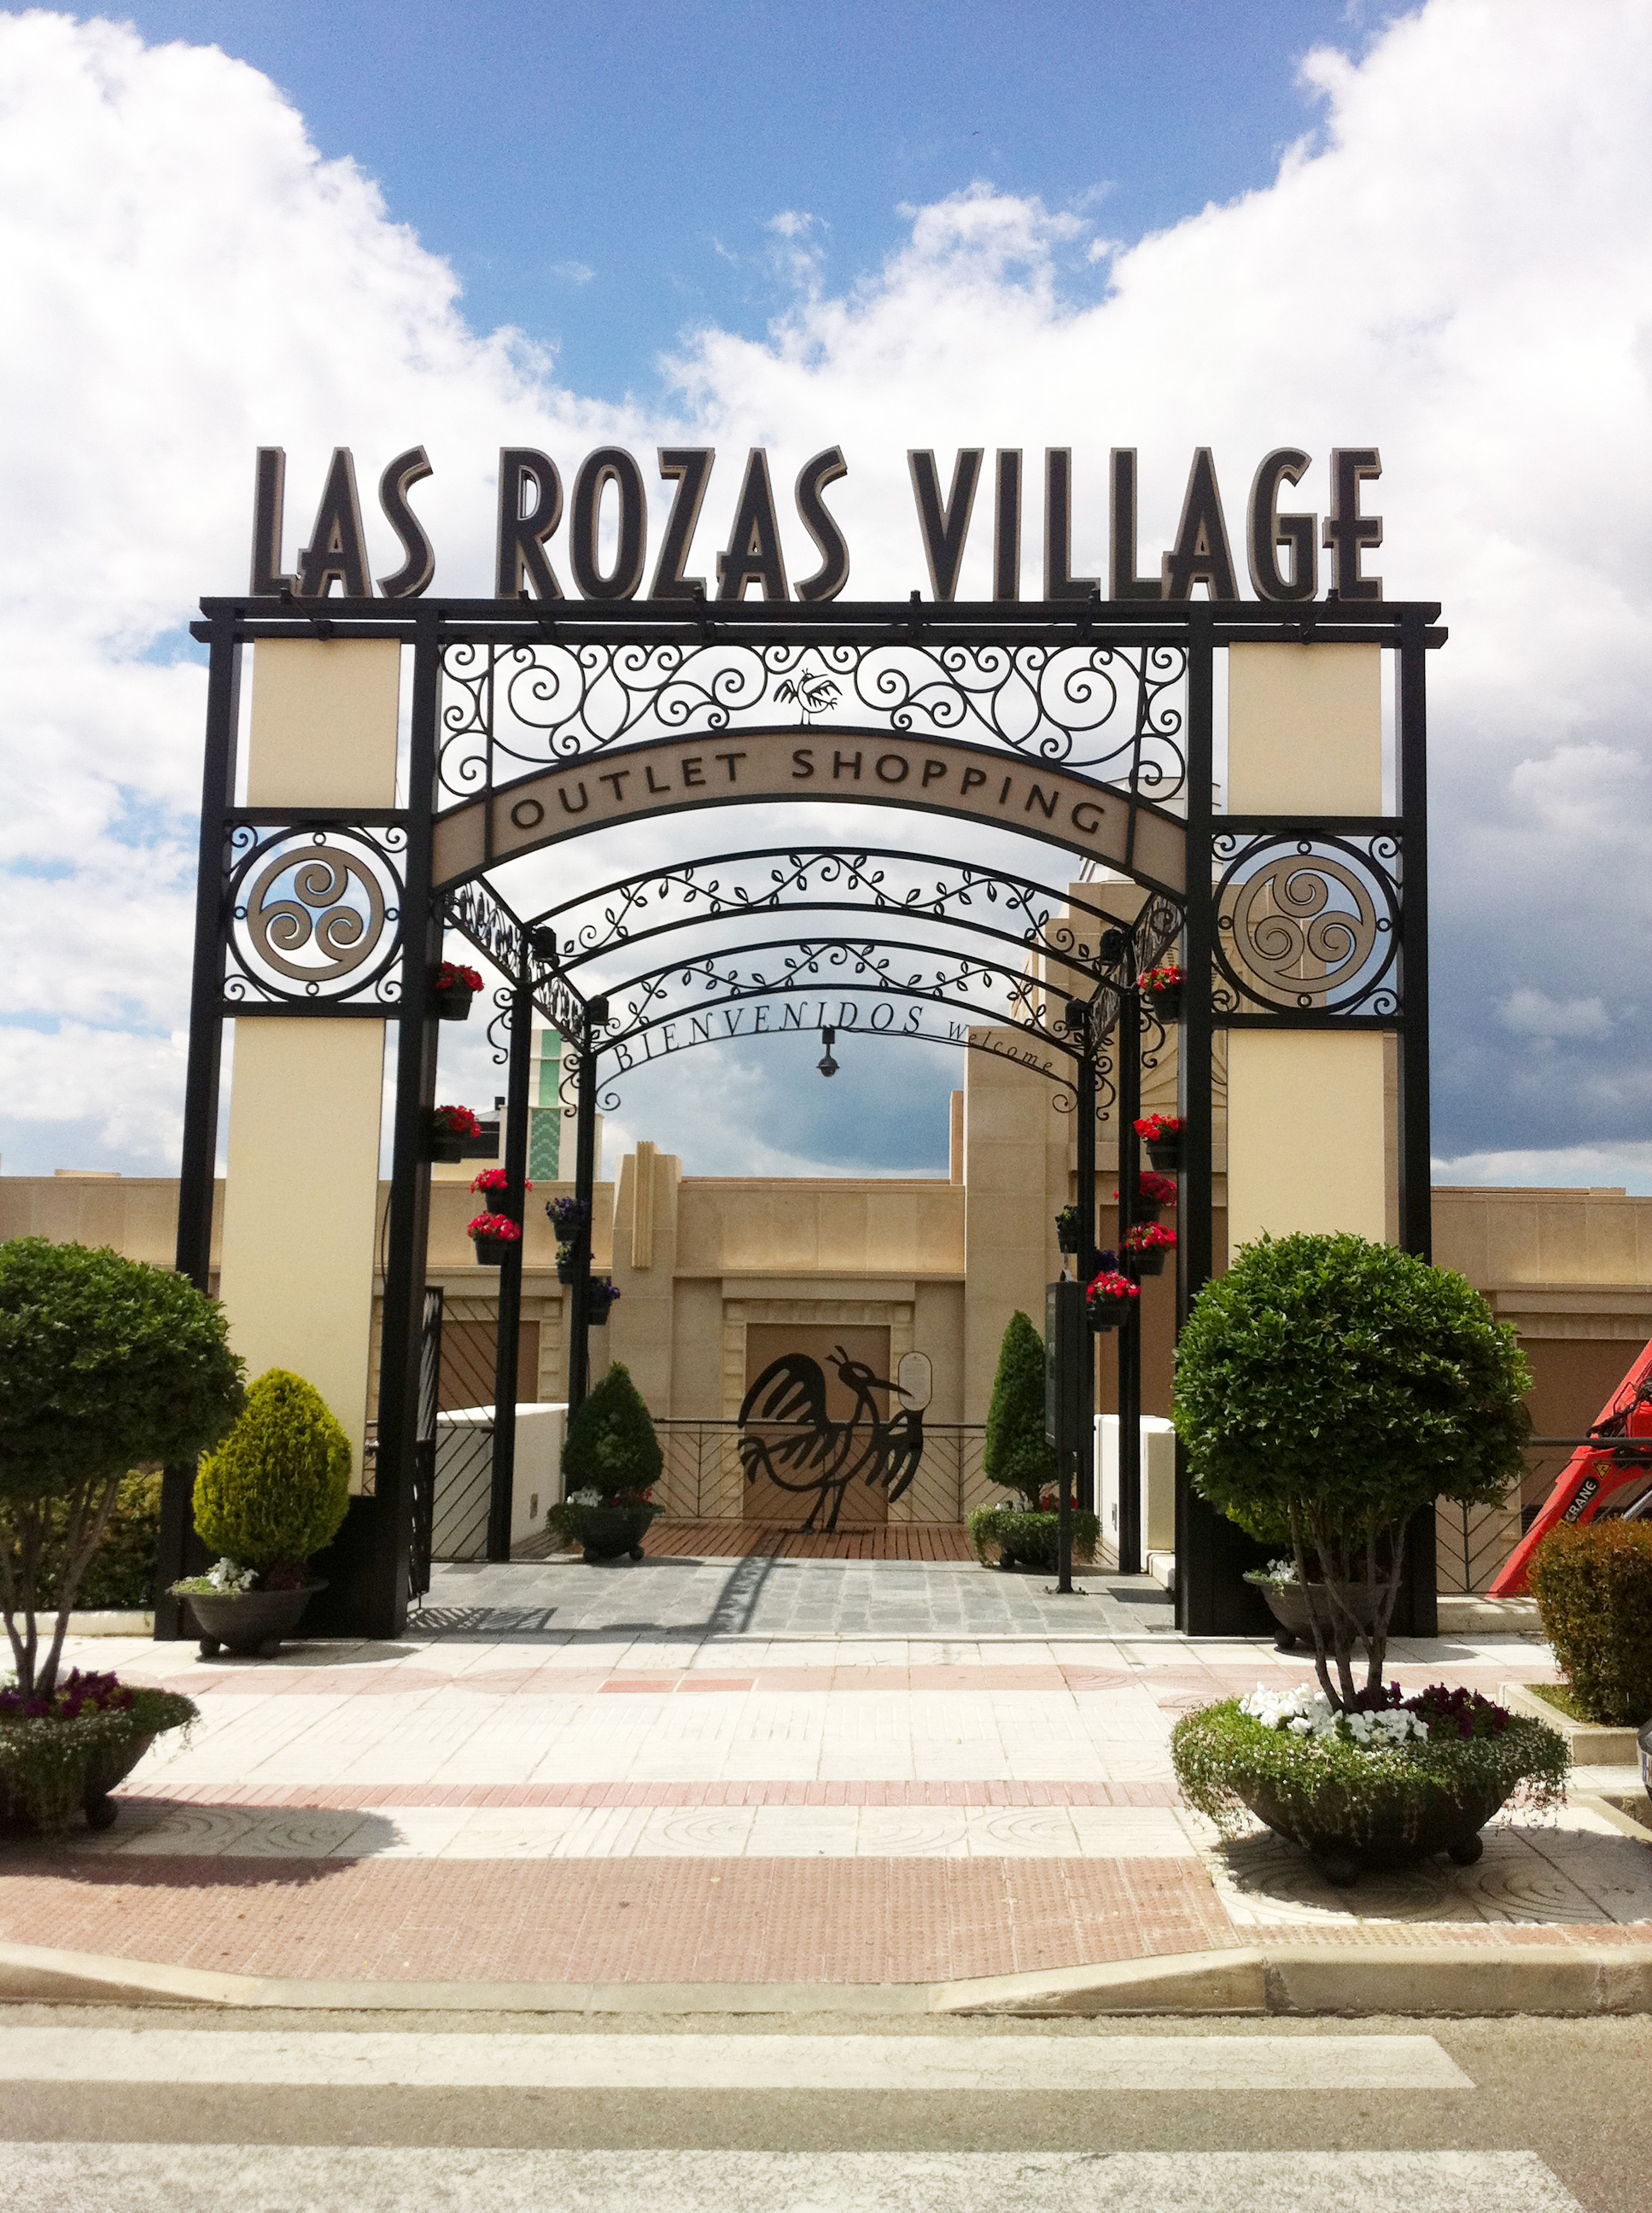 Compras en outlets de dise adores las rozas village - The first outlet las rozas ...